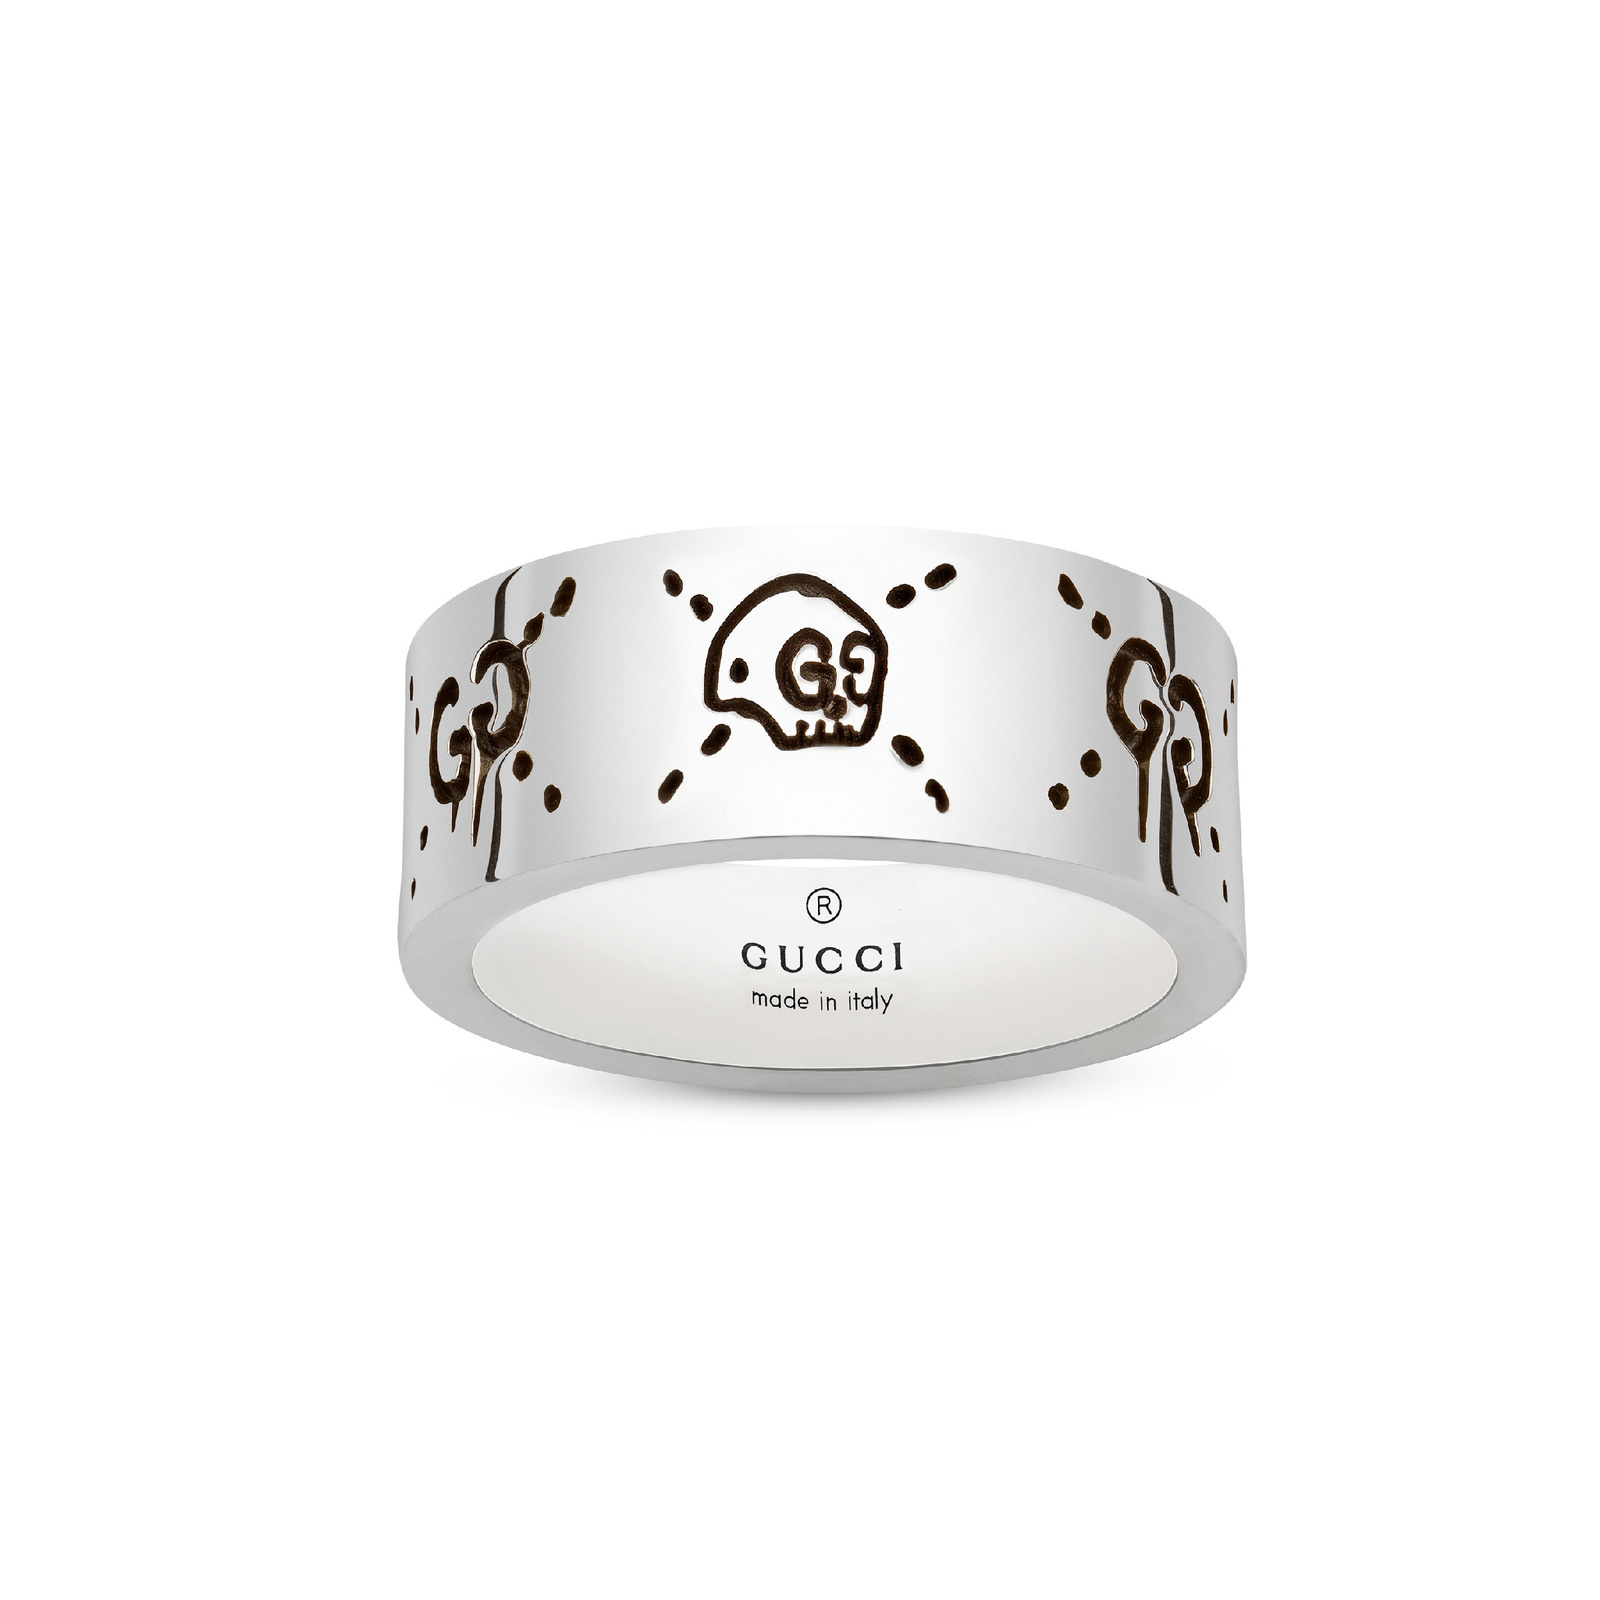 Gucci Ghost 9mm Ring in Silver - Ring Size N